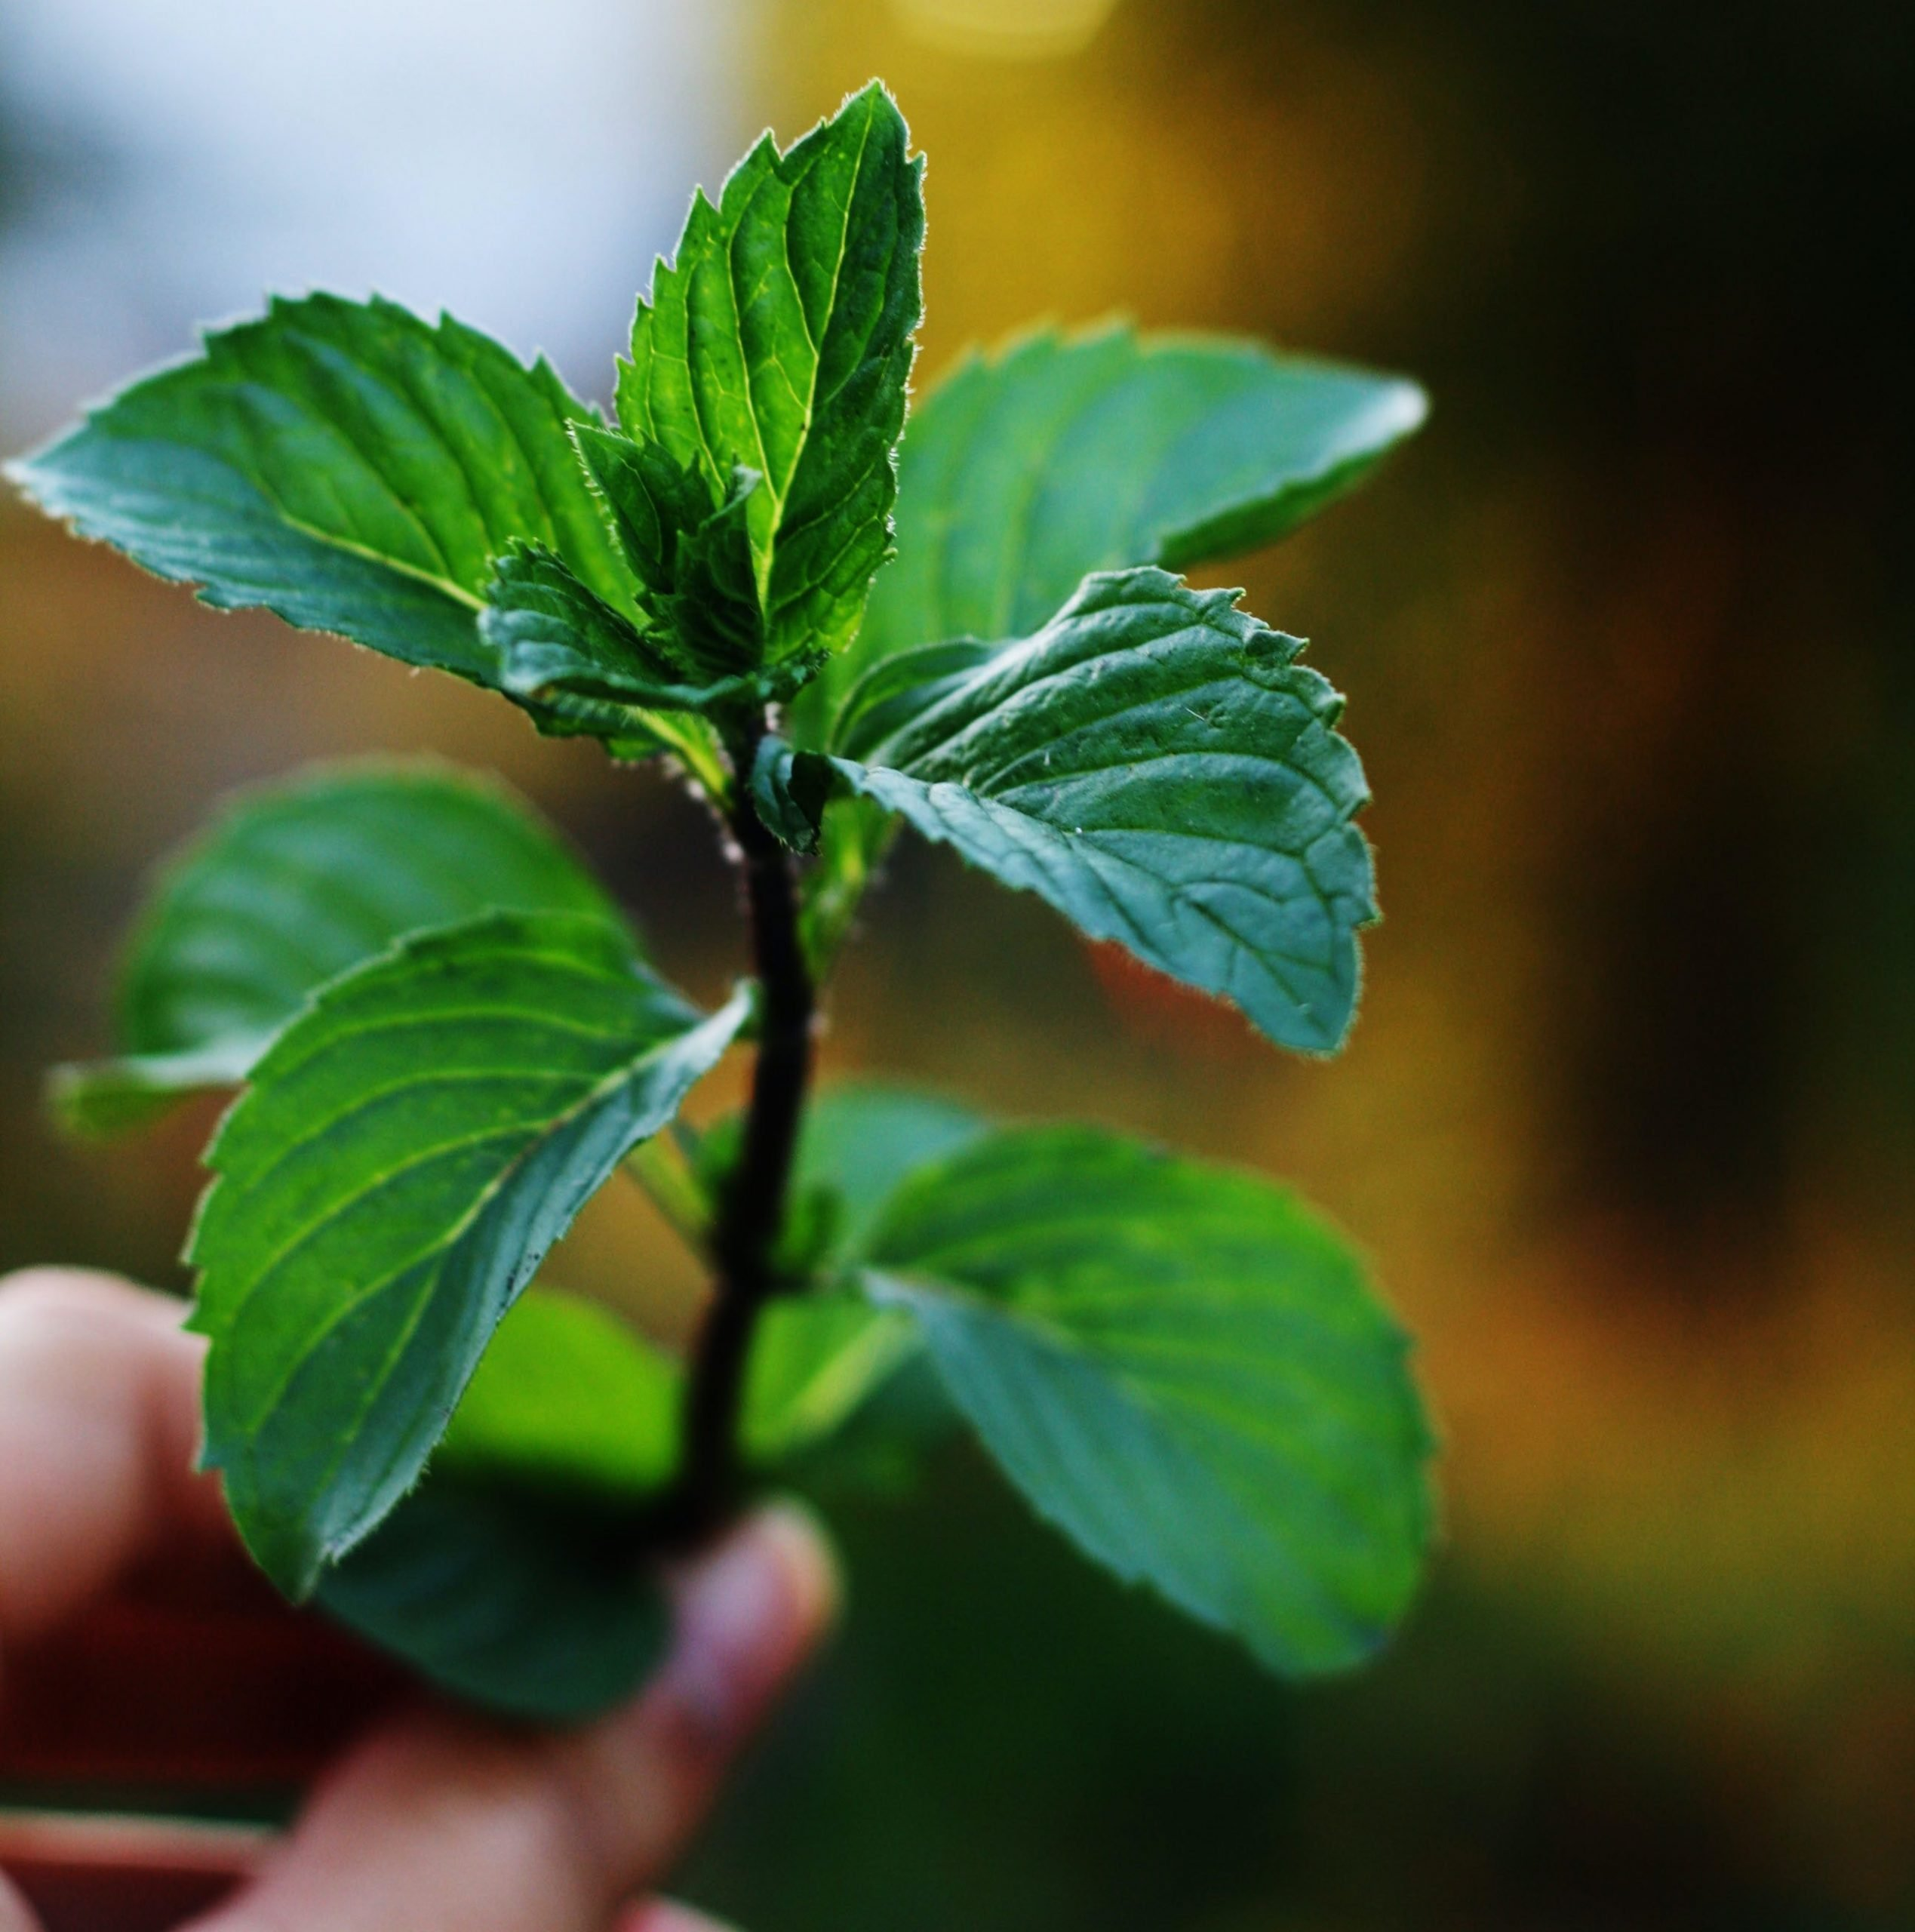 A hand holding a twig of spearmint for displaying spearmint leaves.